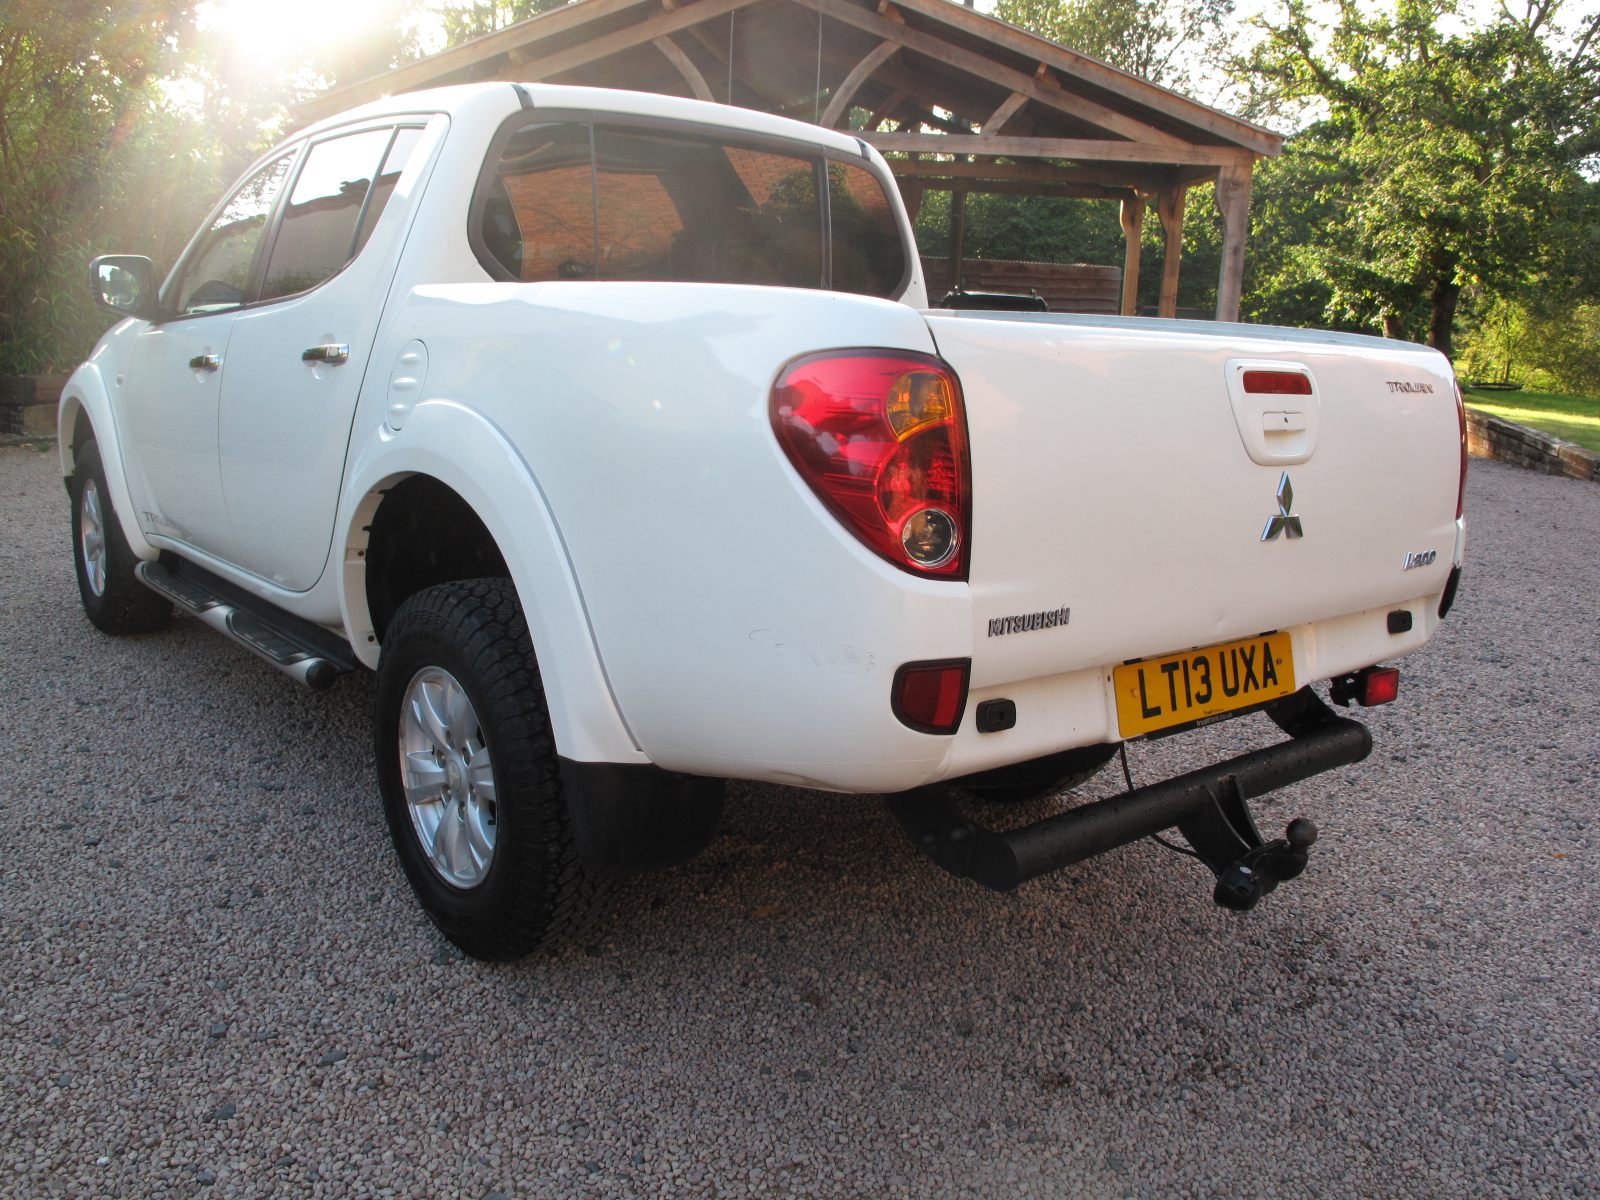 2013 13Mitsubishi L200 2.5 DI-D Trojan Double Cab 4WD 4dr VERY LOW MILES! IMMACULATE CONDITION! NO VAT! full